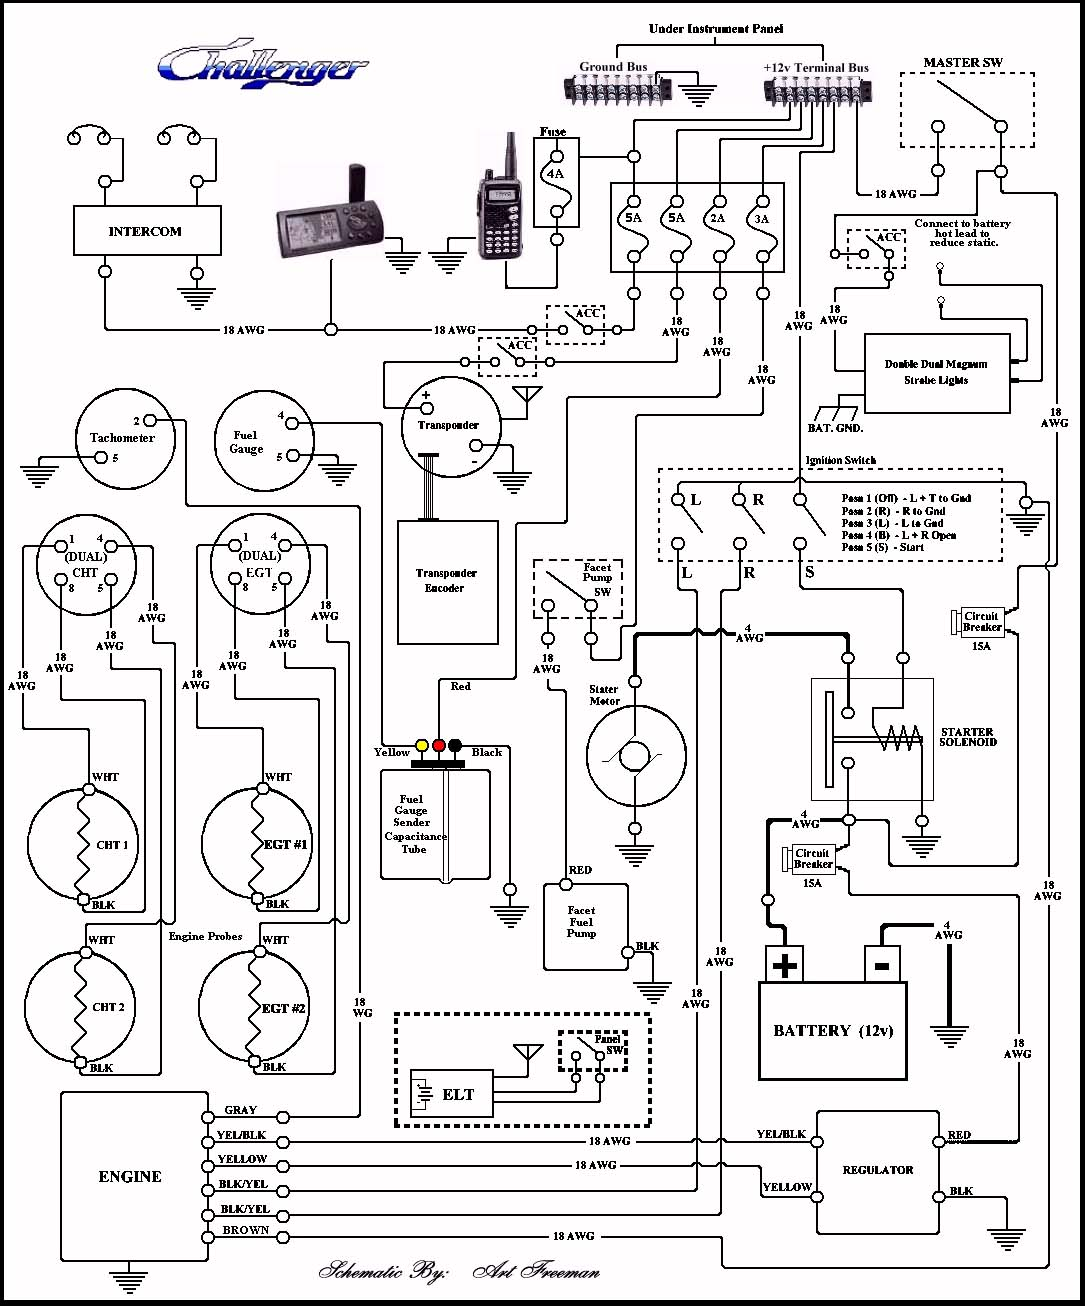 Schem_Analog basic wiring of fuselage, instruments and power source aircraft wiring diagram symbols at soozxer.org